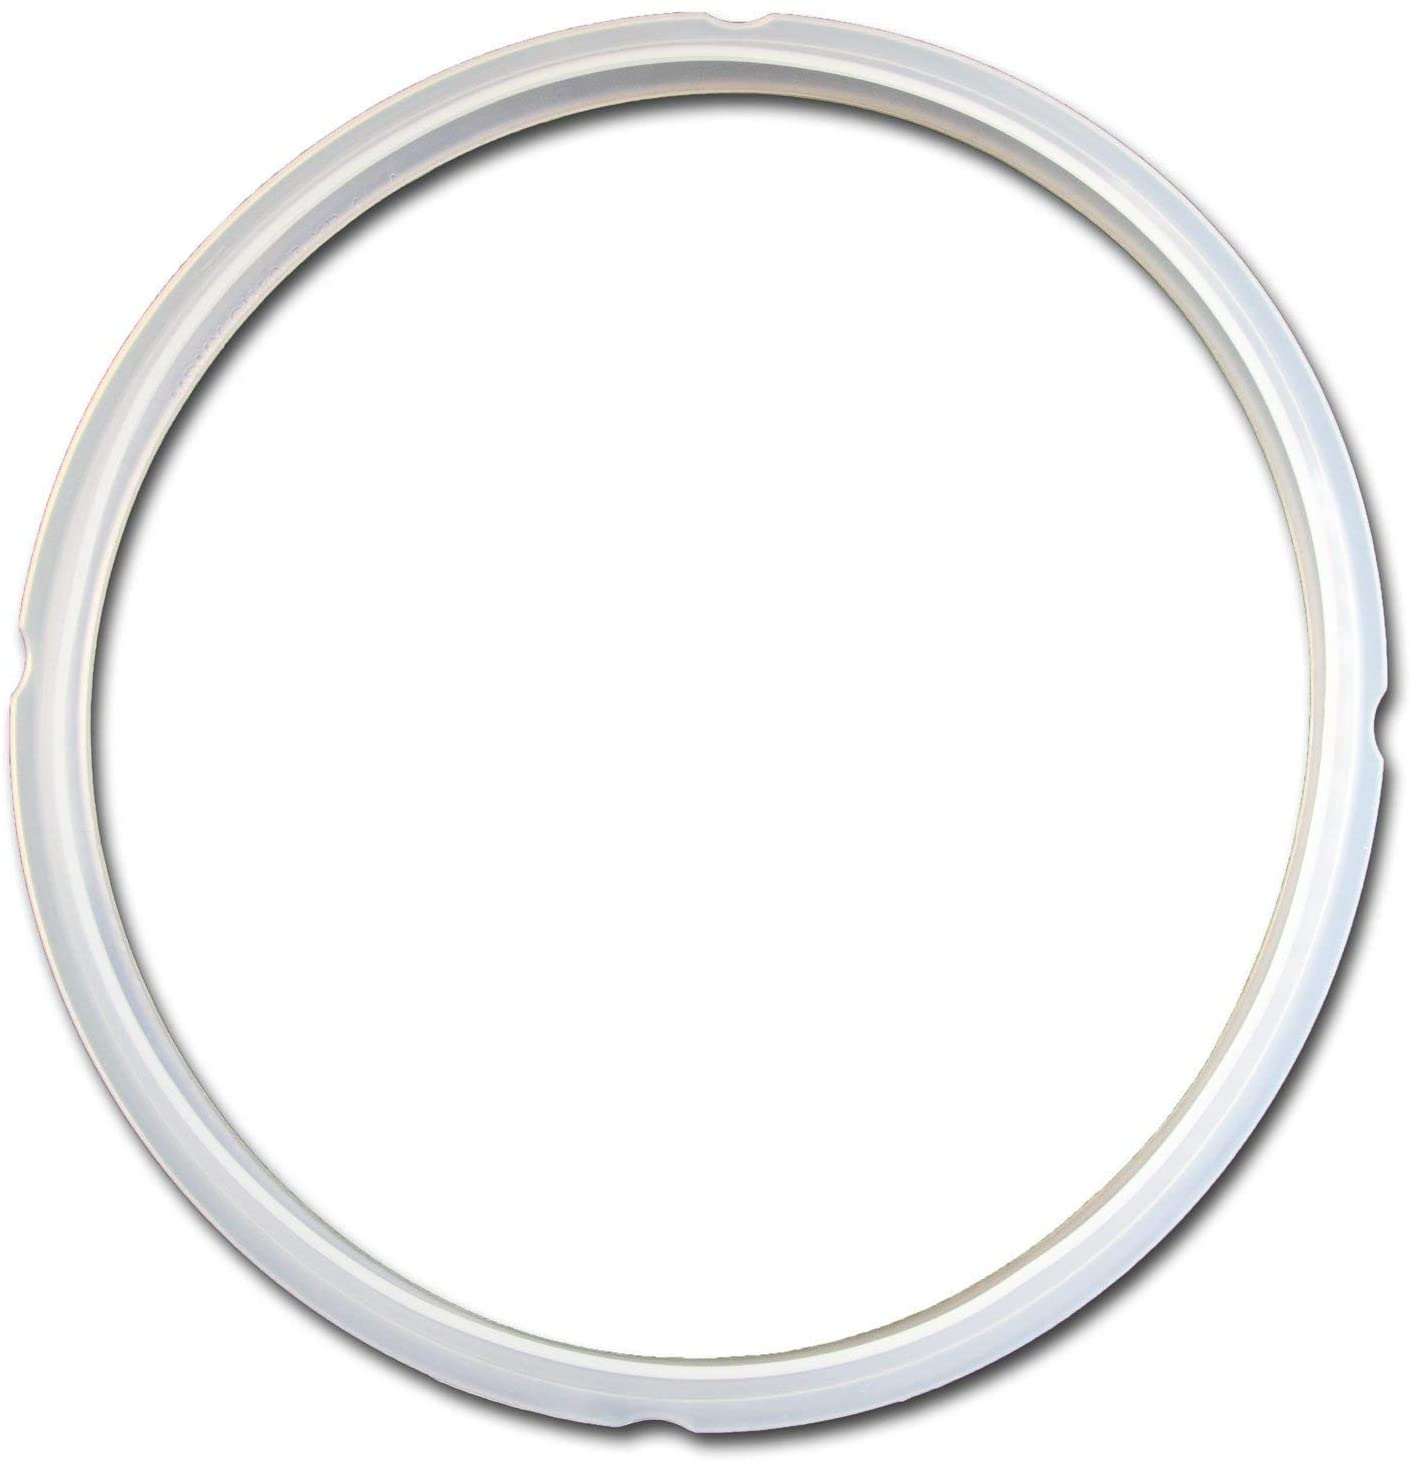 GJS Gourmet Replacement Pressure Ring or Rubber Gasket Compatible With CRUX 8 QT Electric Pressure Multi Cooker Model M-80B30BG and 14721 (1, 8 Quart)